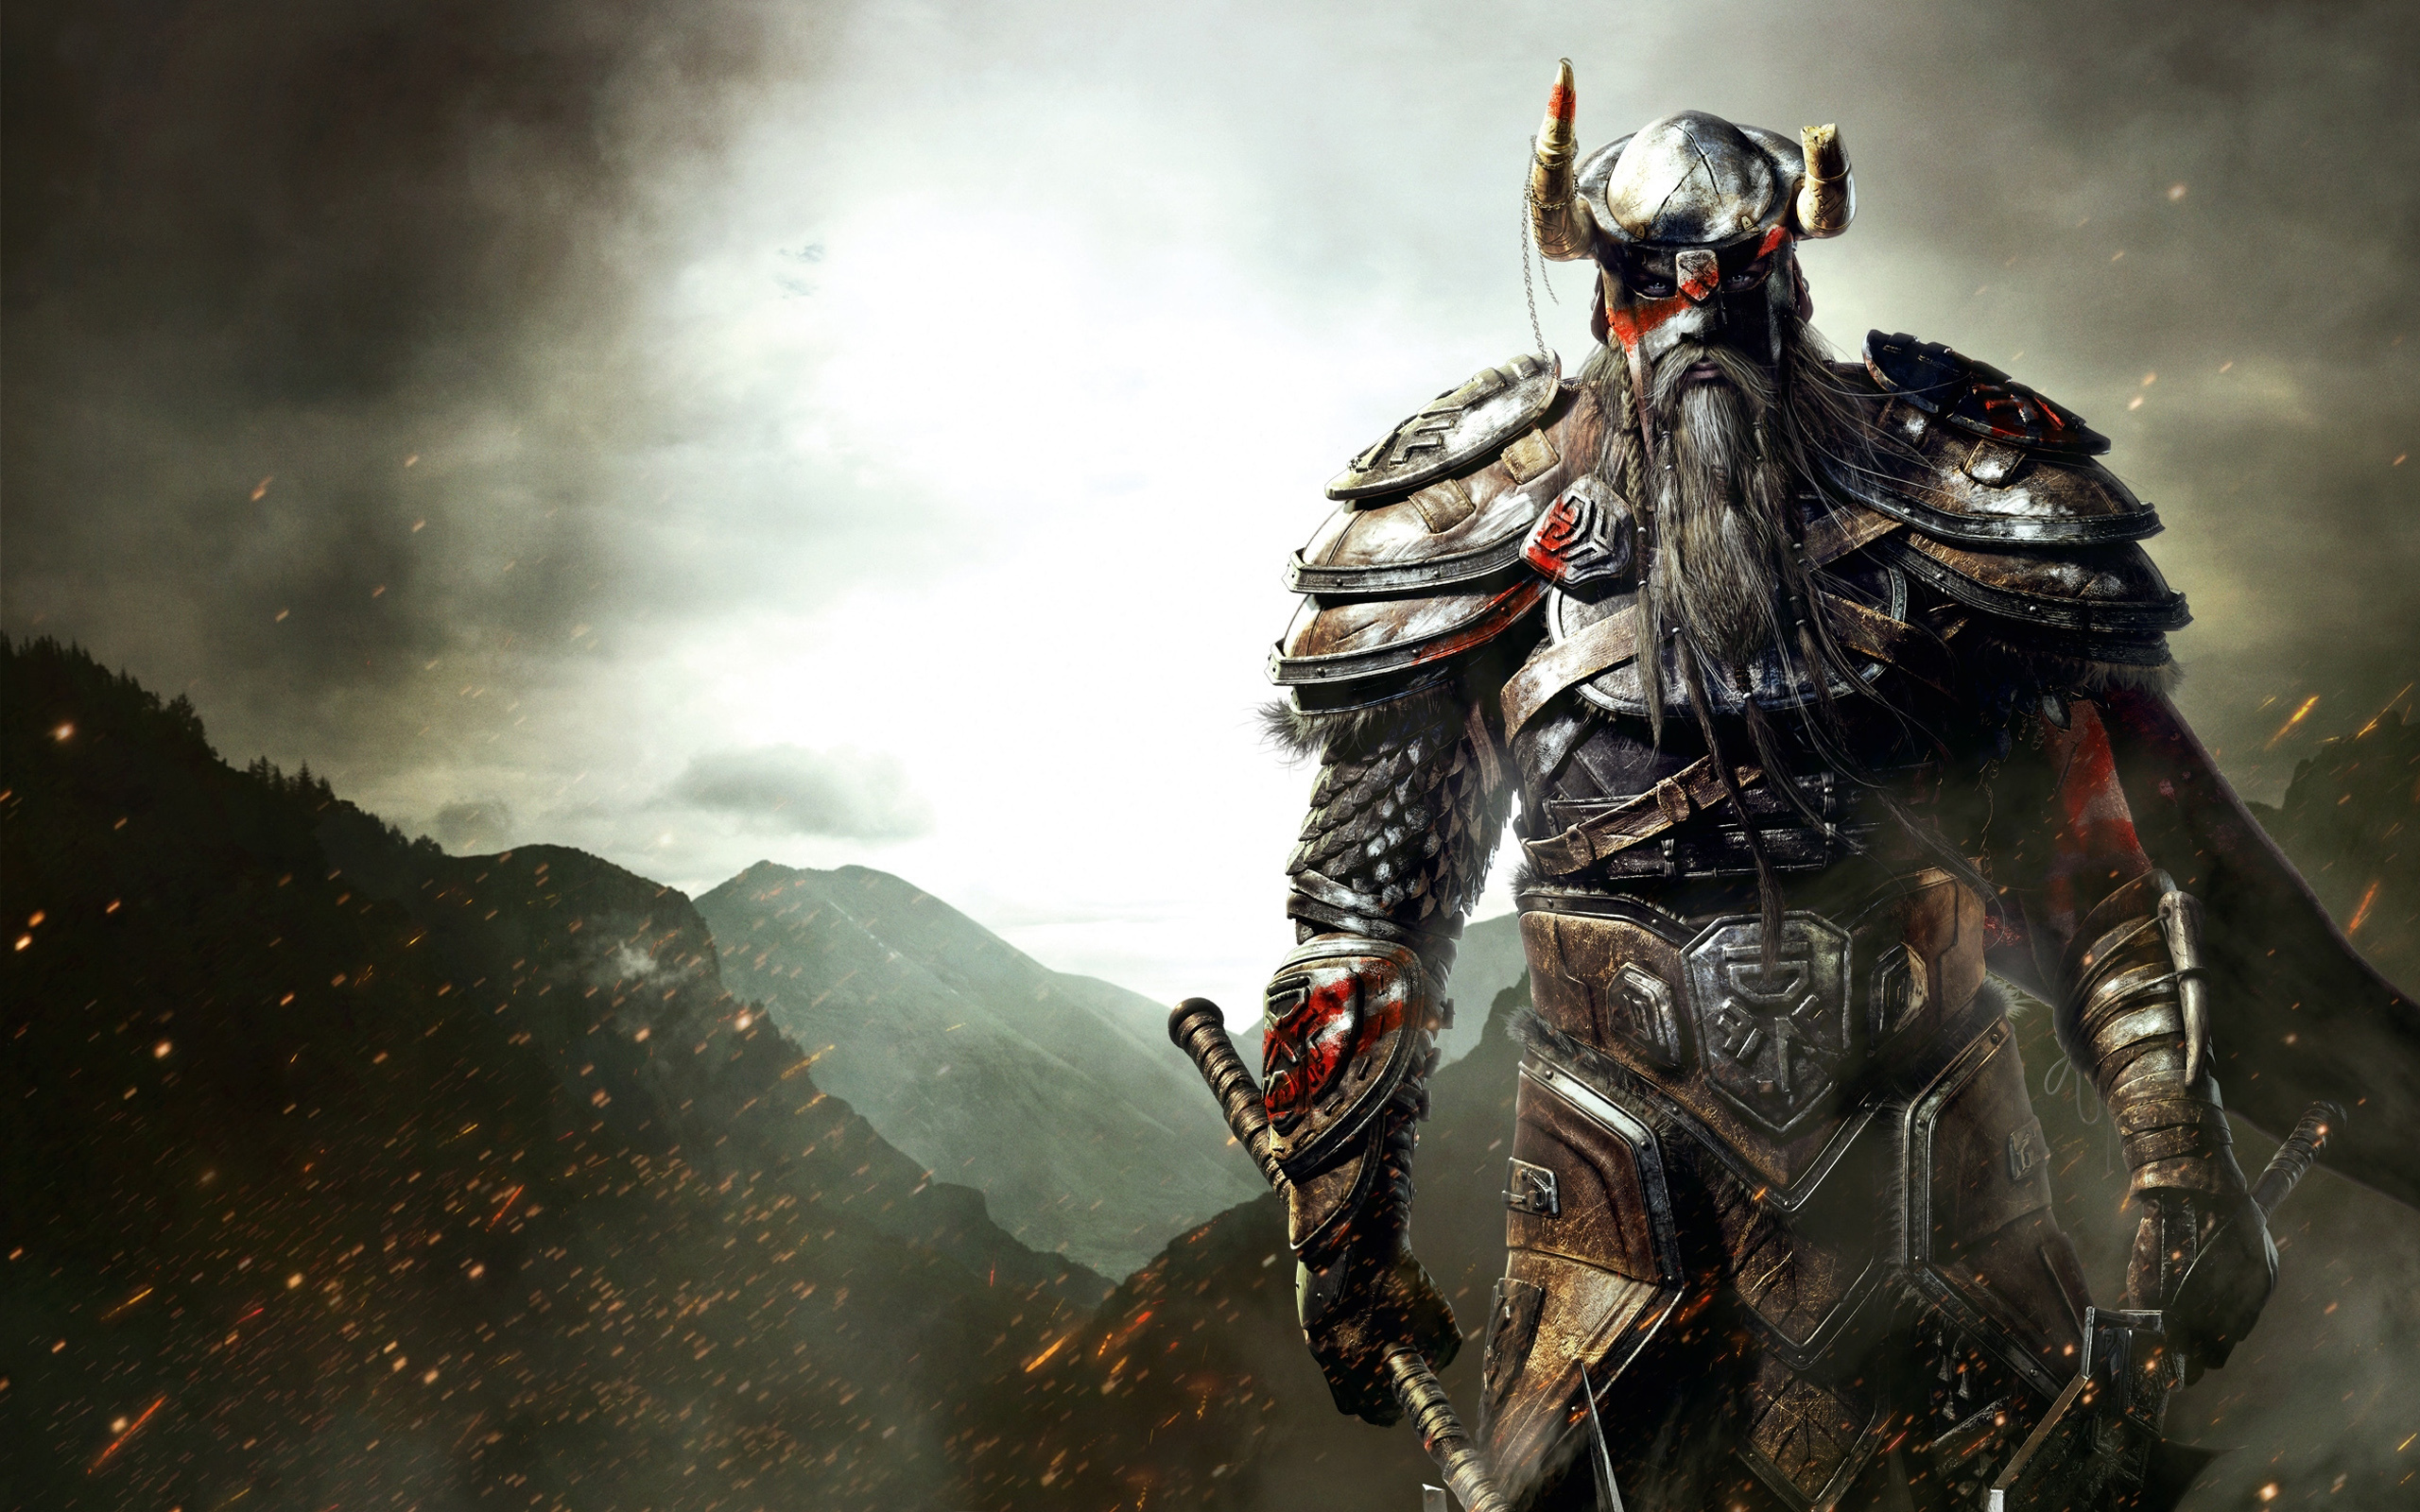 Free Download The Elder Scrolls Online Wallpaper The Elder Scrolls